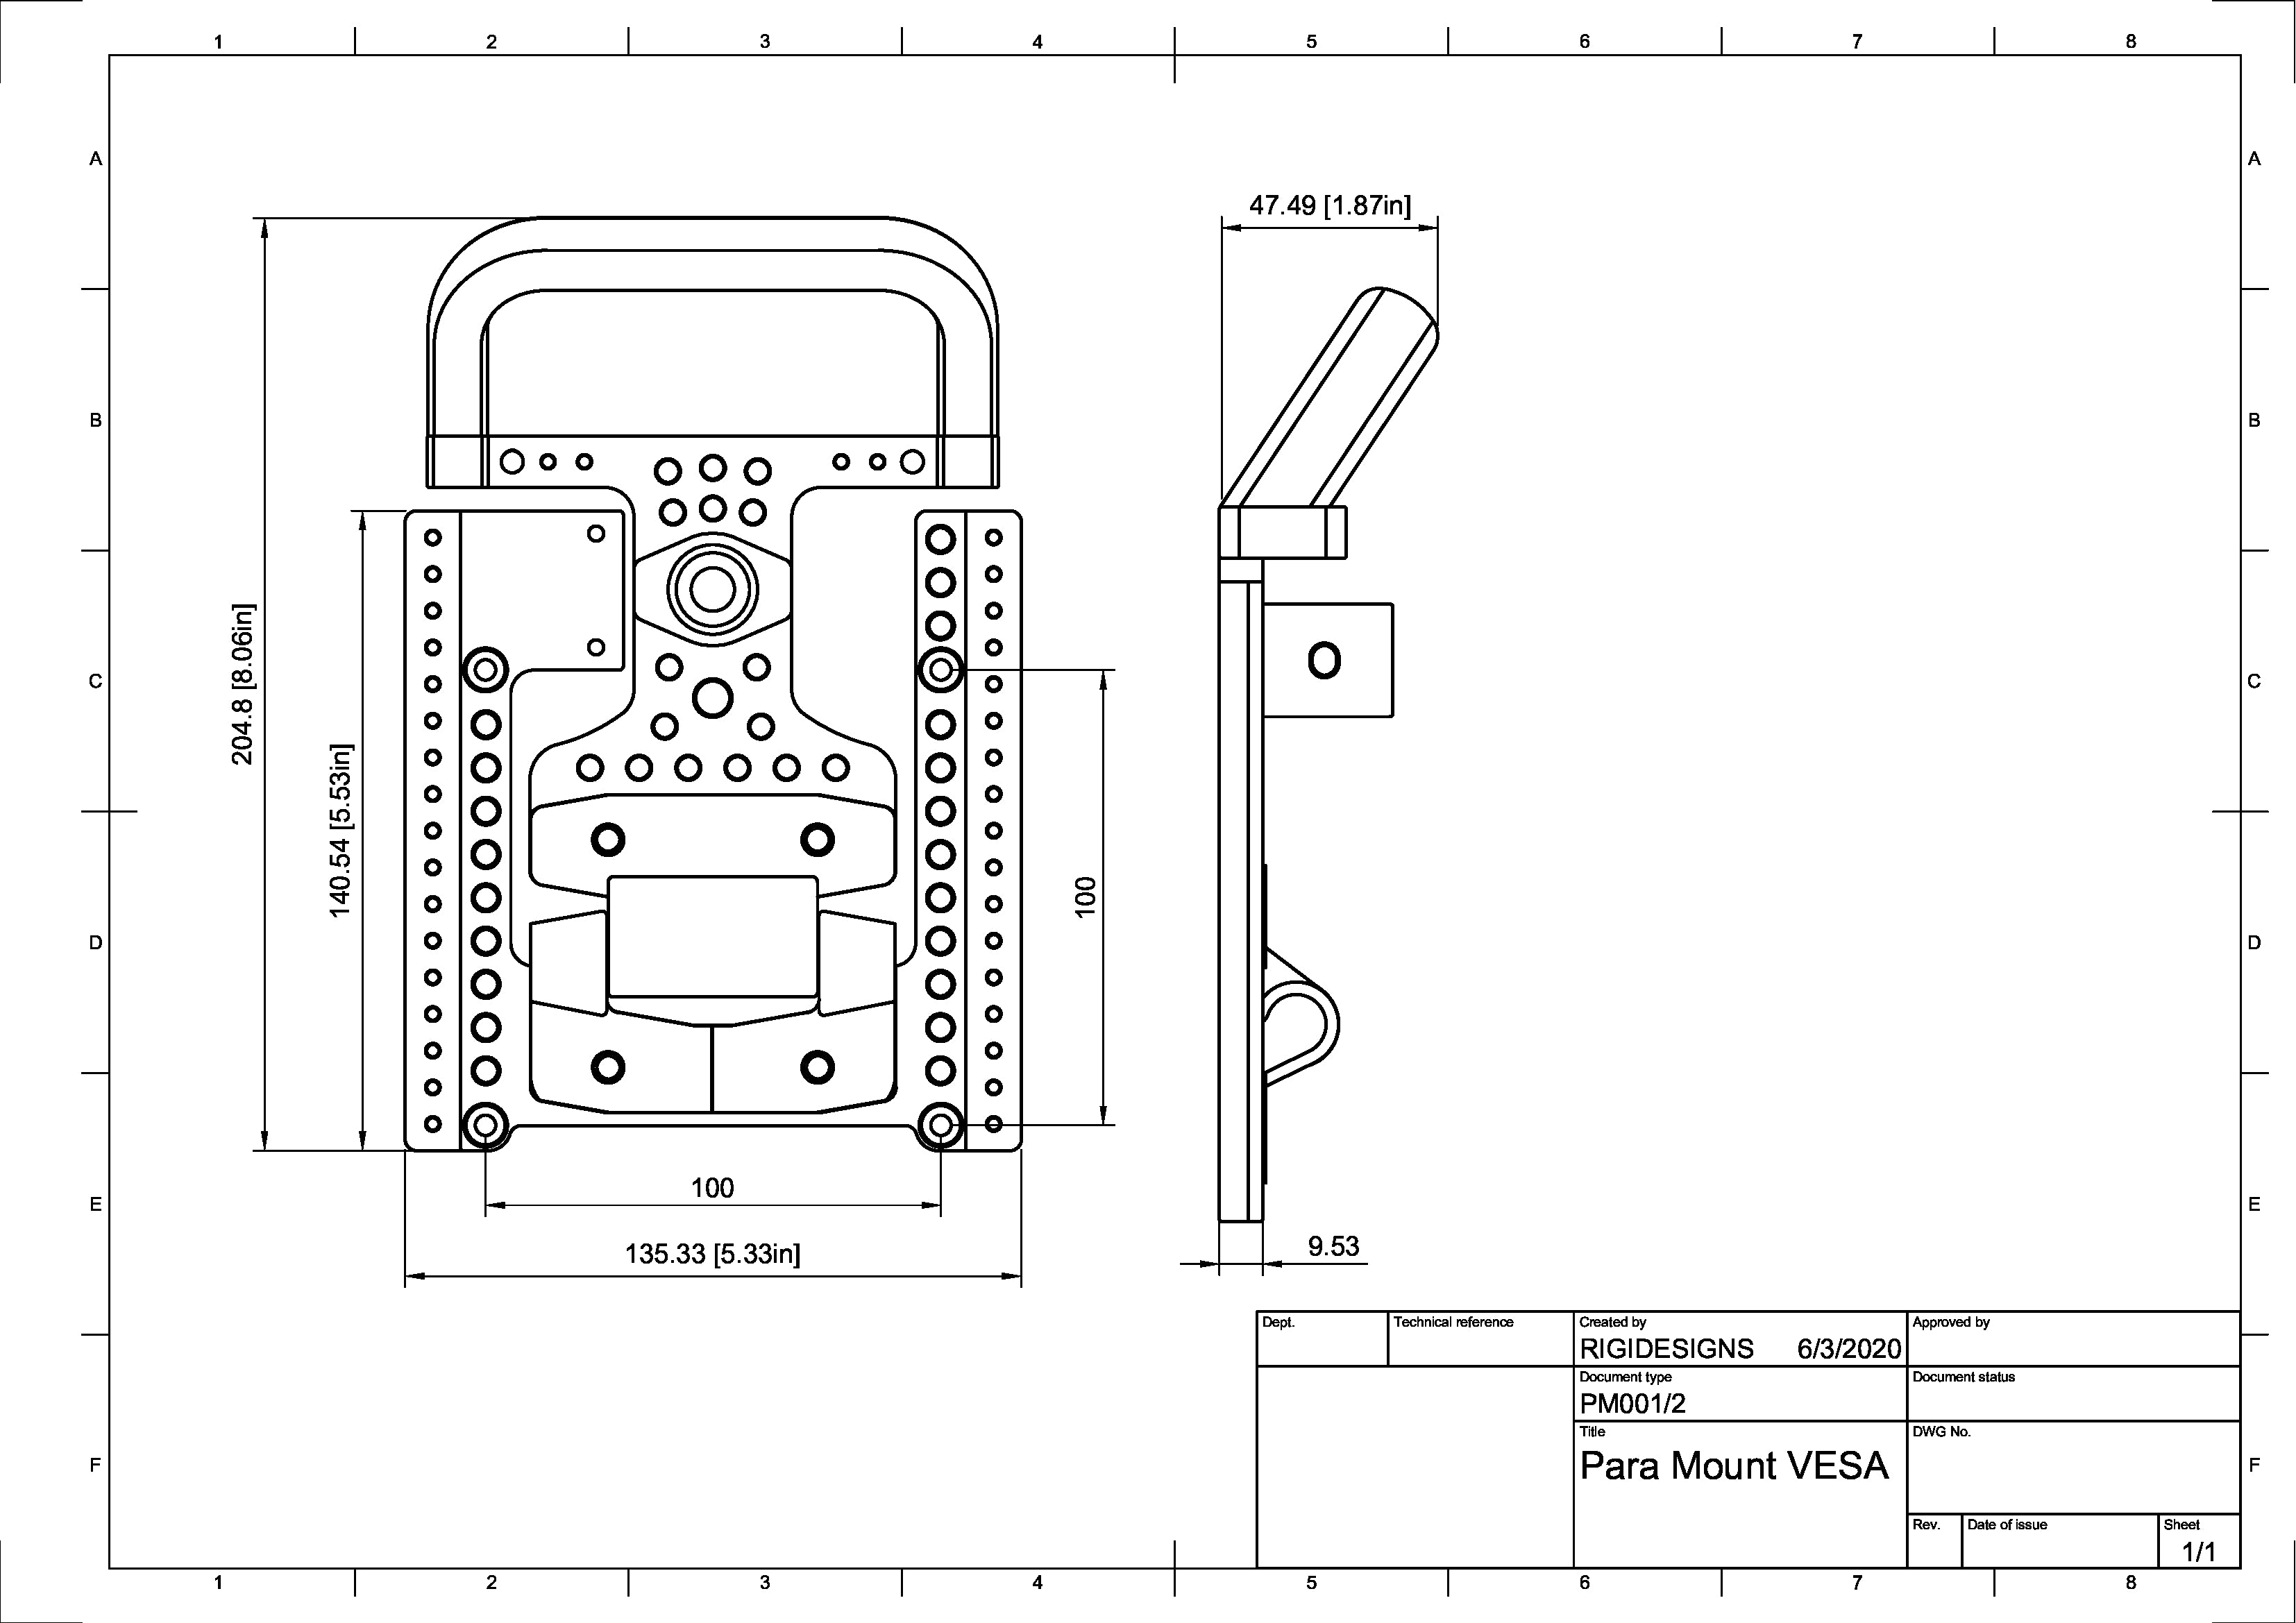 Para Mount VESA Product Drawing